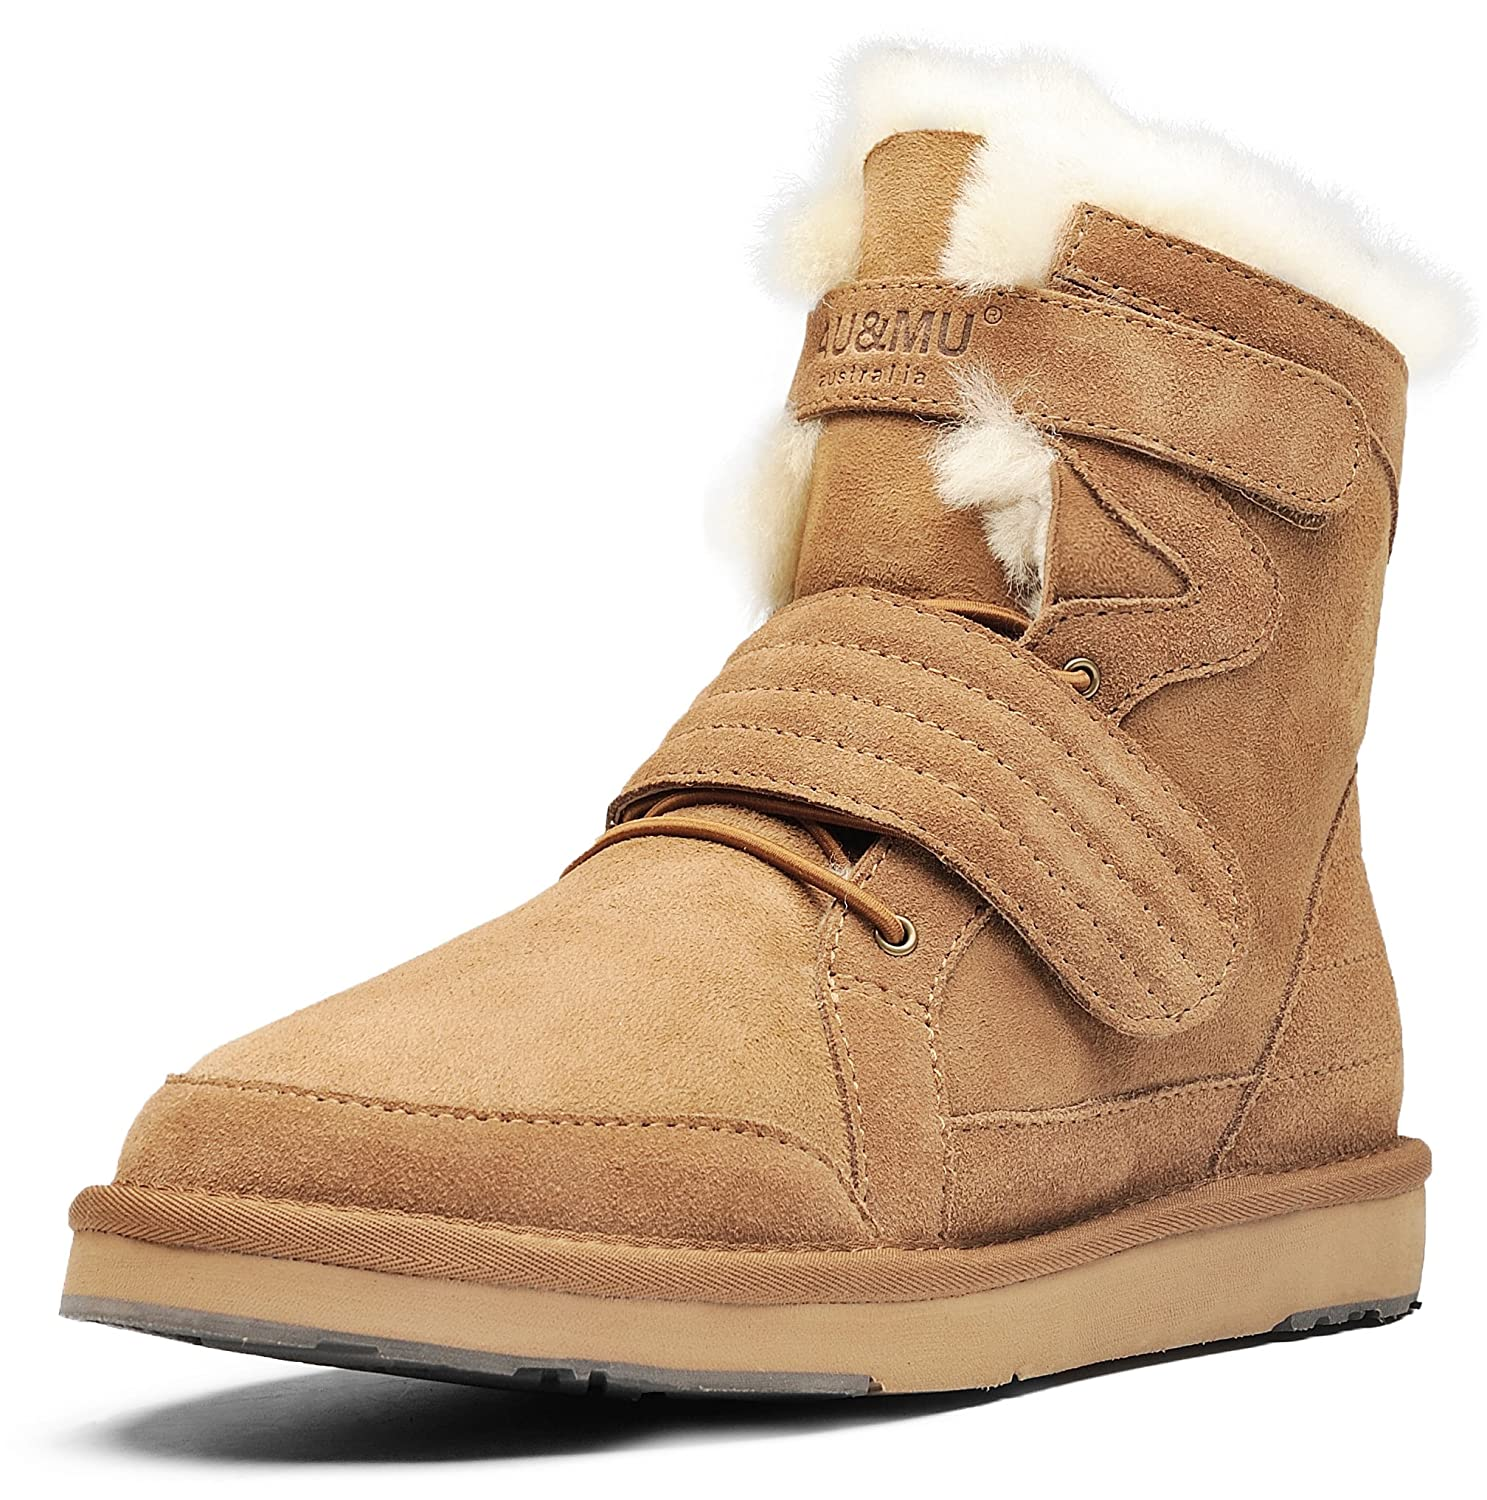 AU&MU Women's Full Fur Sheepskin Suede Winter Snow Boots B073DXVCTZ 6 B(M) US|Chestnut 3